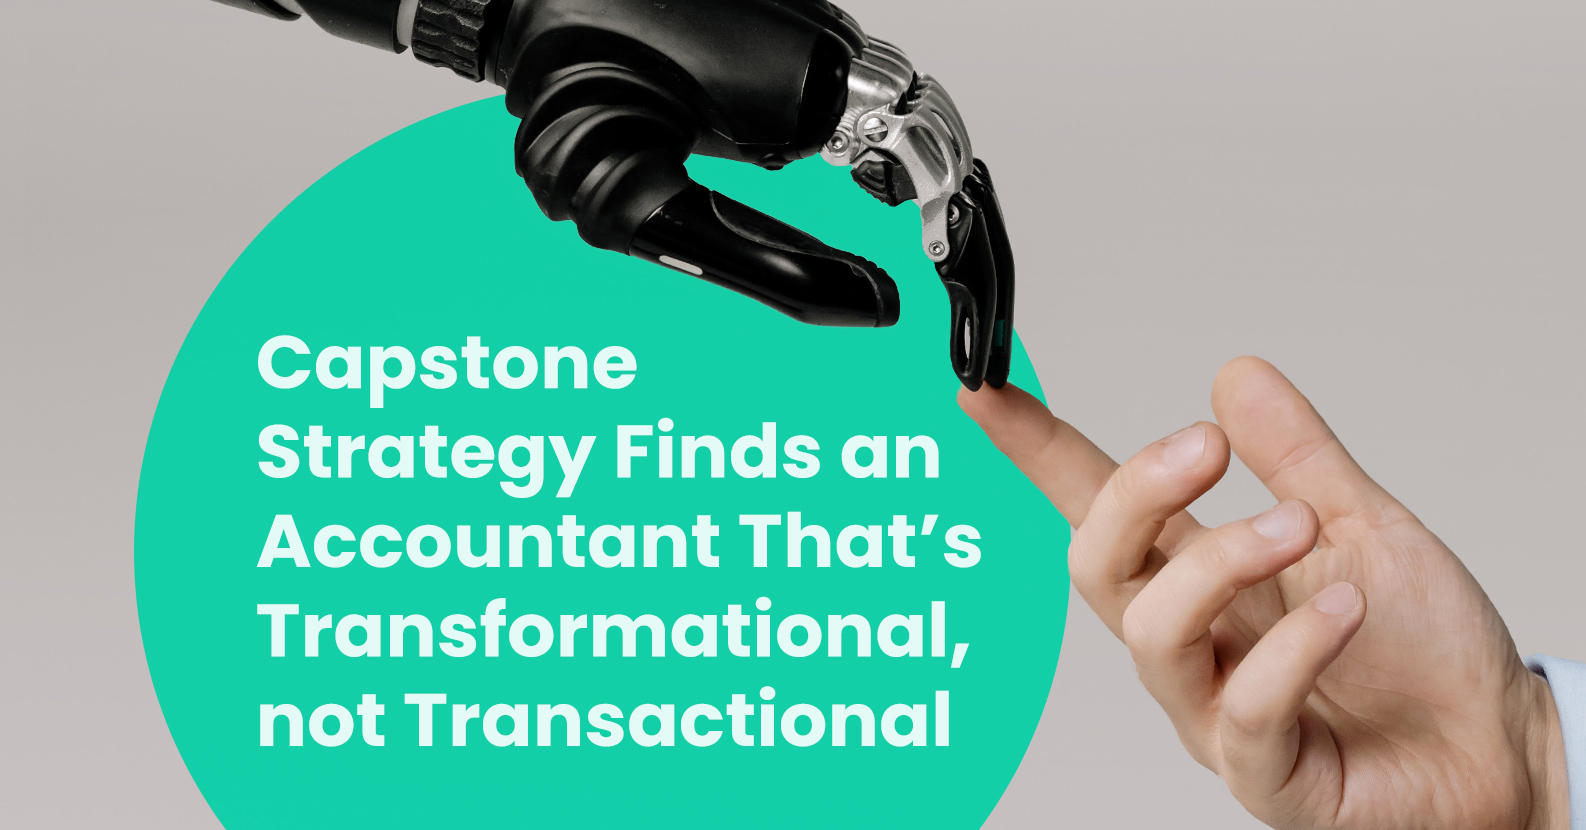 Capstone Strategy Finds an Accountant That's Transformational, not Transactional